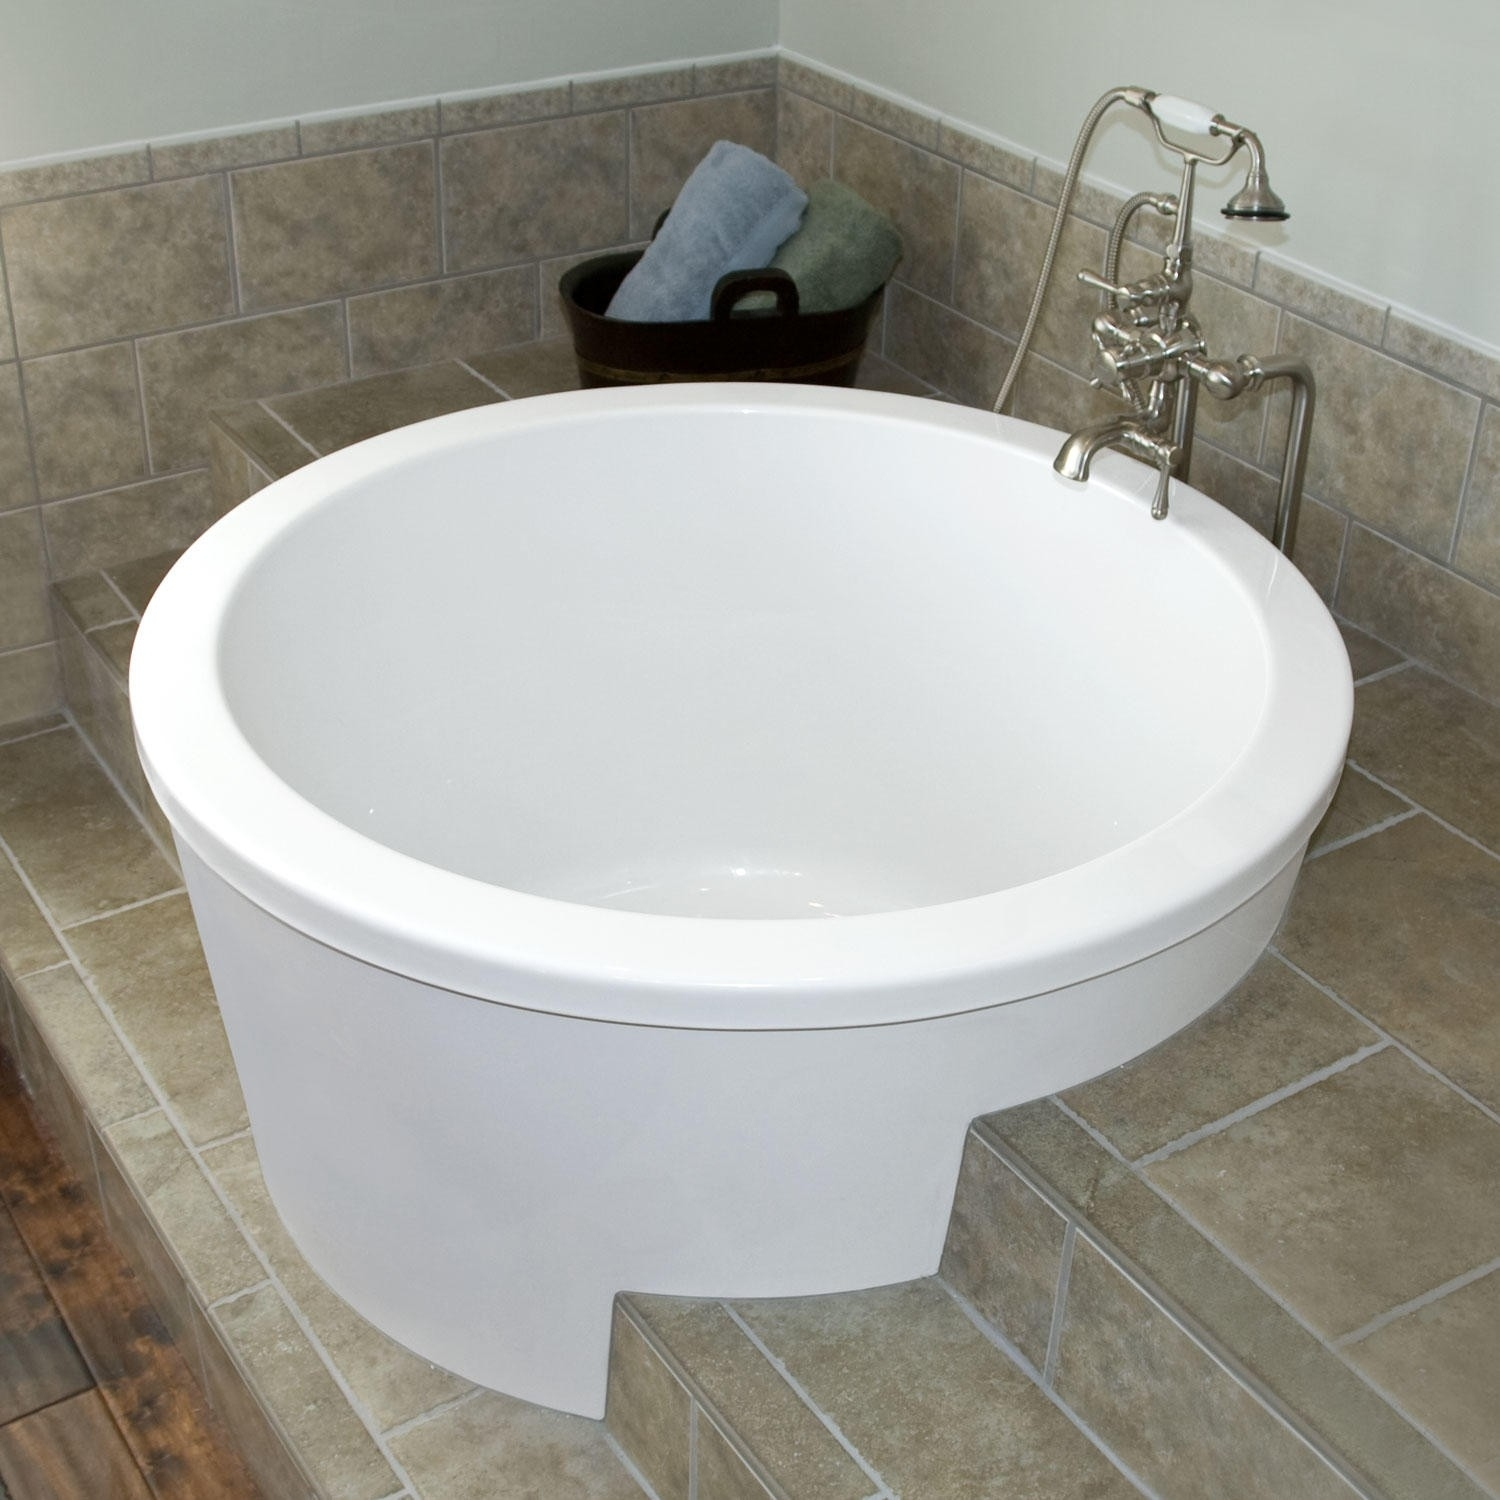 Diy Japanese Soaker Tub Randolph Indoor And Outdoor Design